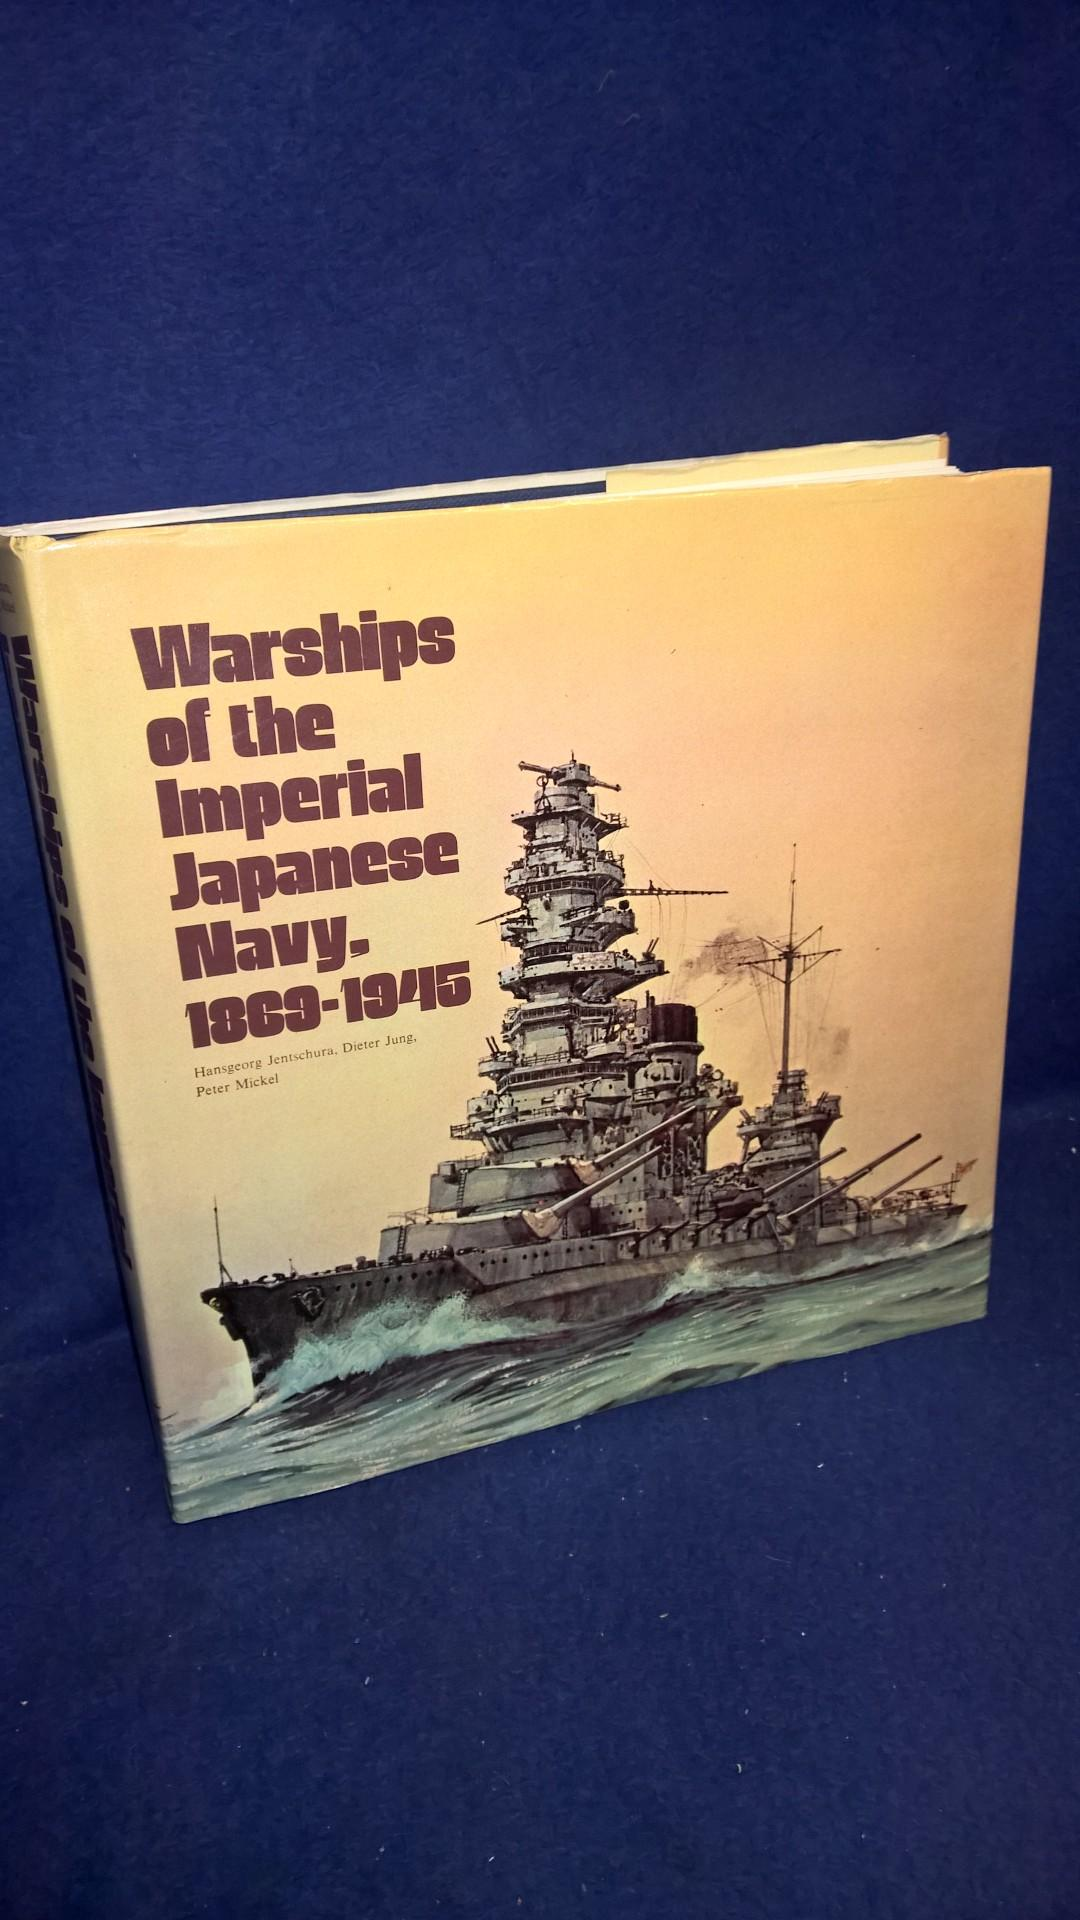 Warships of the Imperial Japanese Navy, 1869-1945.